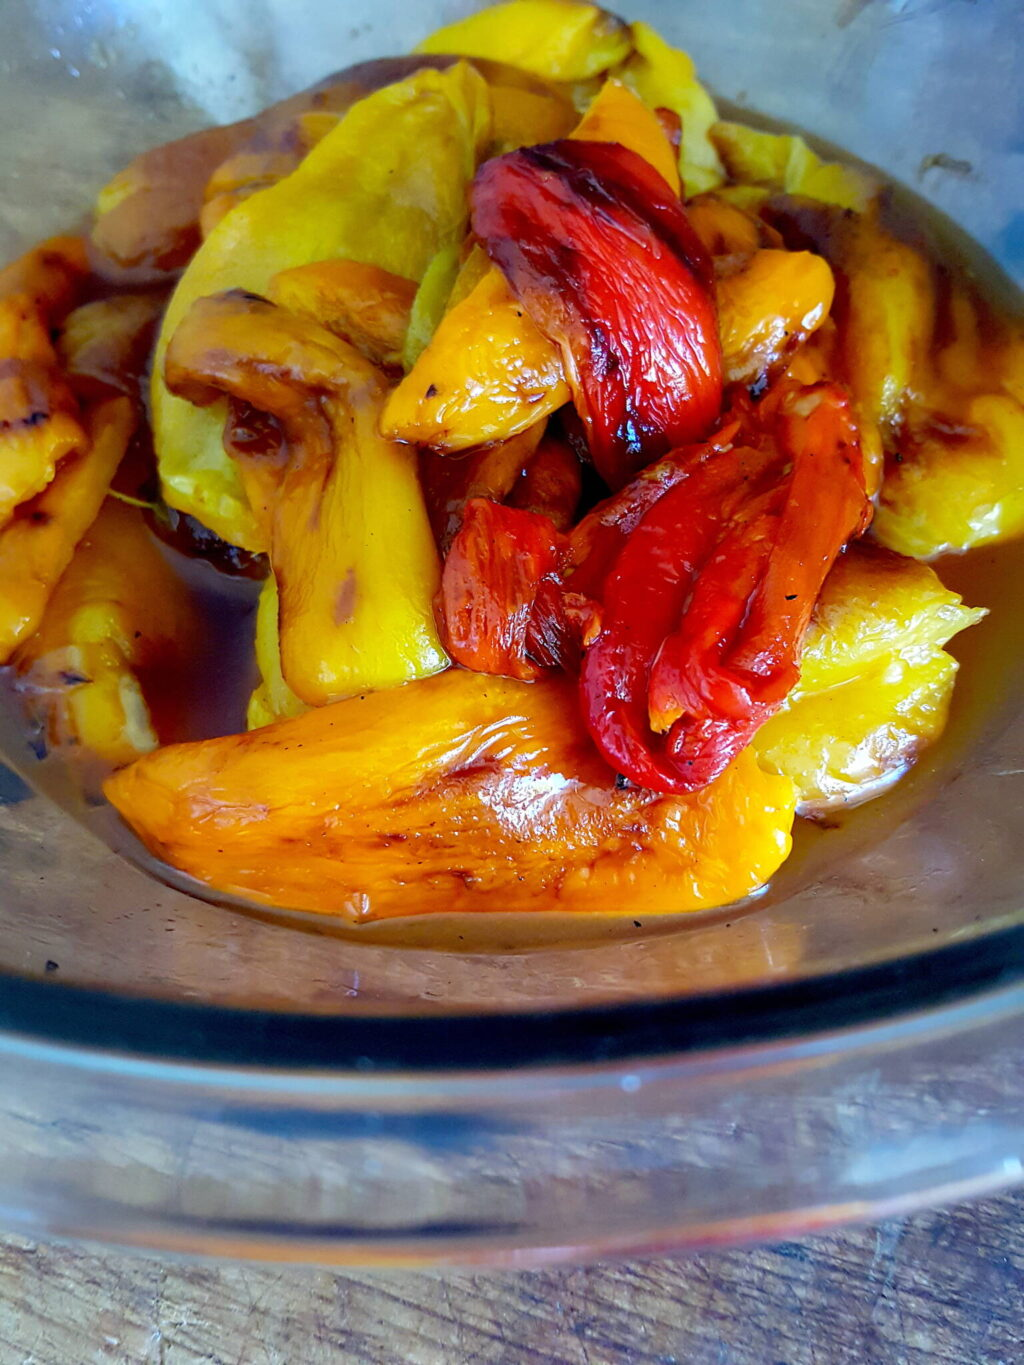 Grilled, peeled peppers